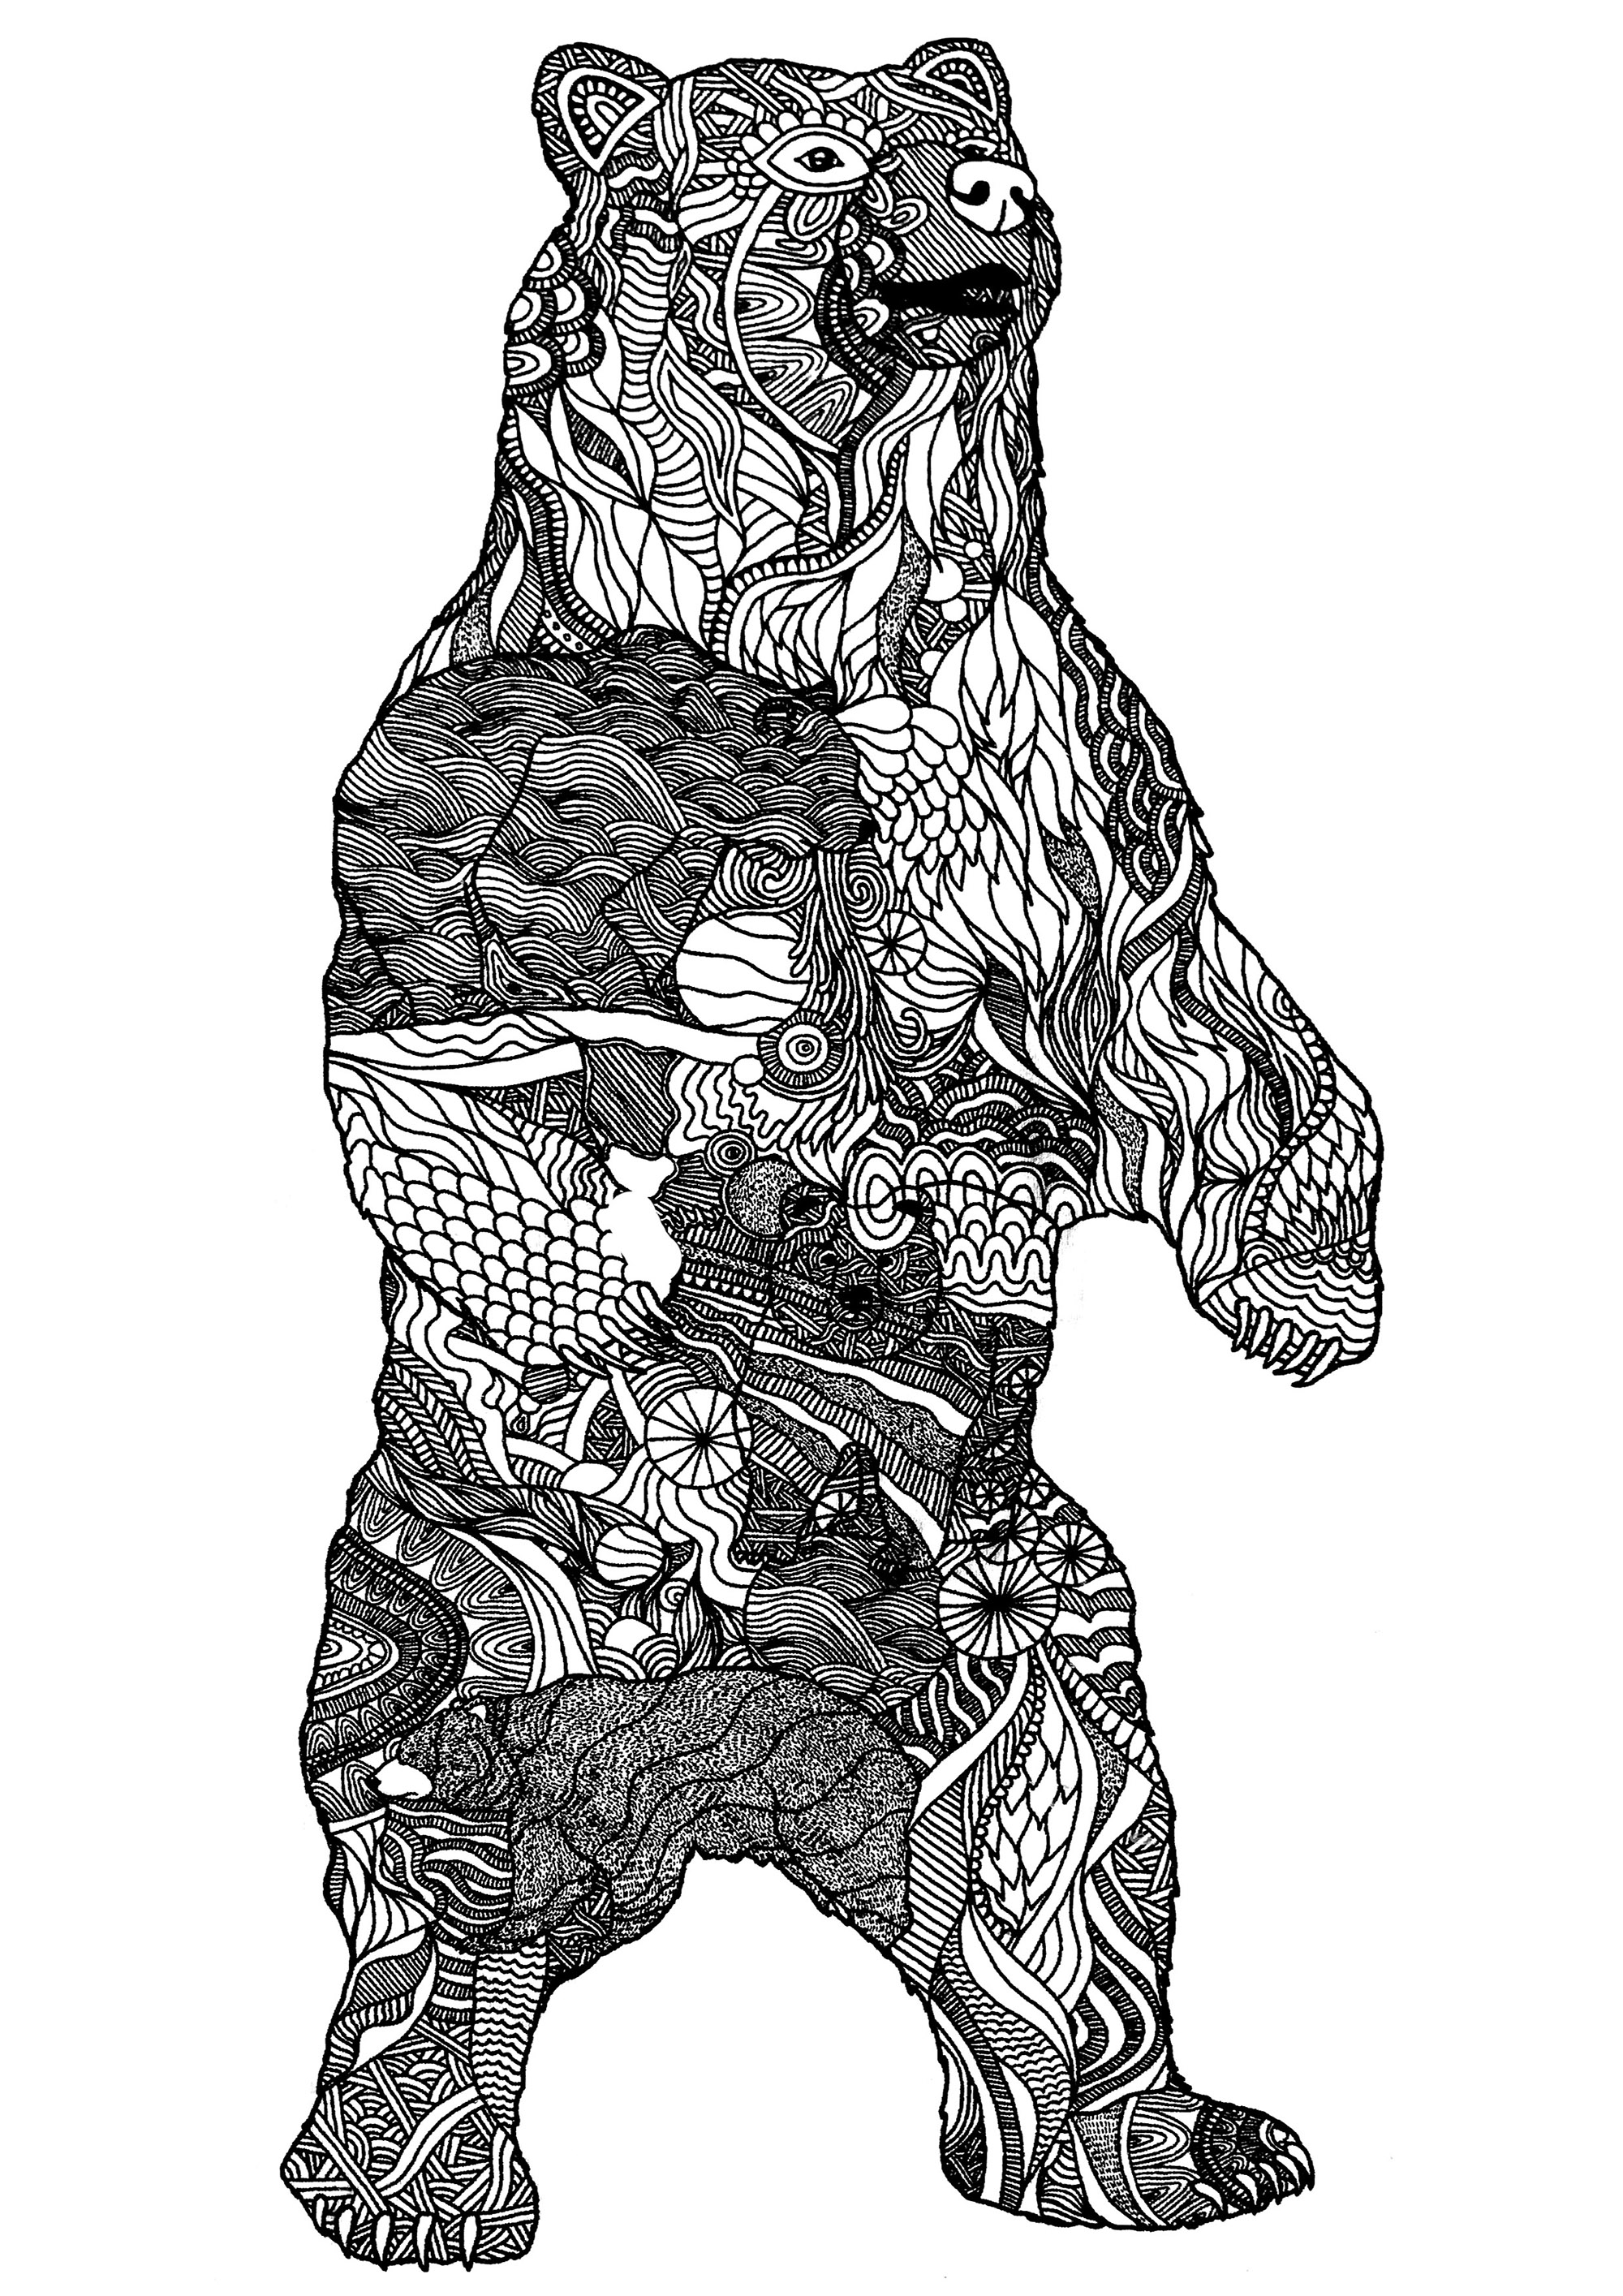 Big Bear Zentangle Patterns Bears Adult Coloring Pages